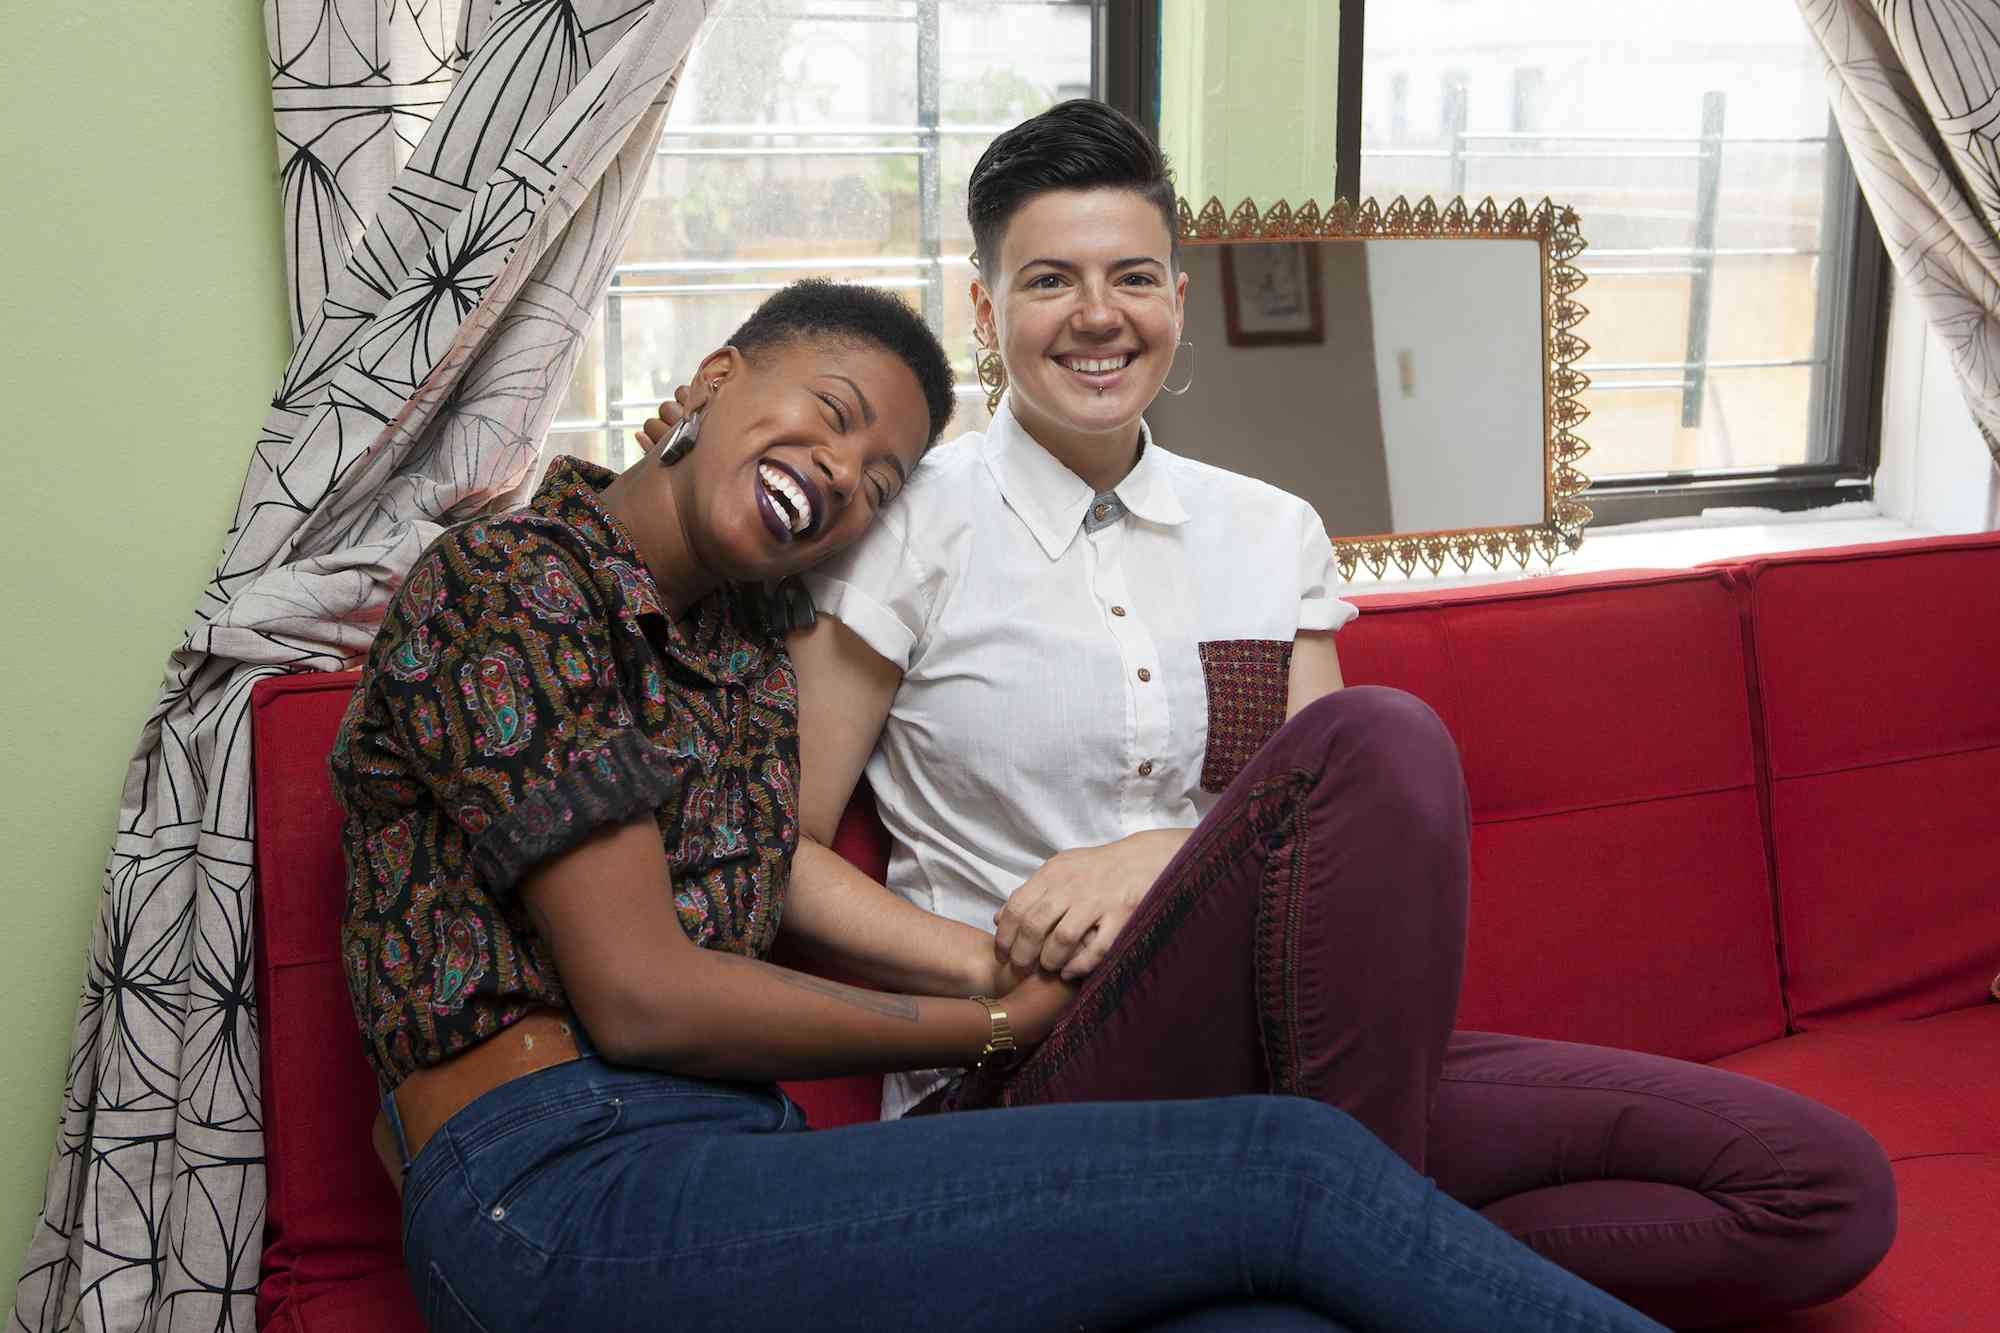 Lesbian couple holding hands on their sofa